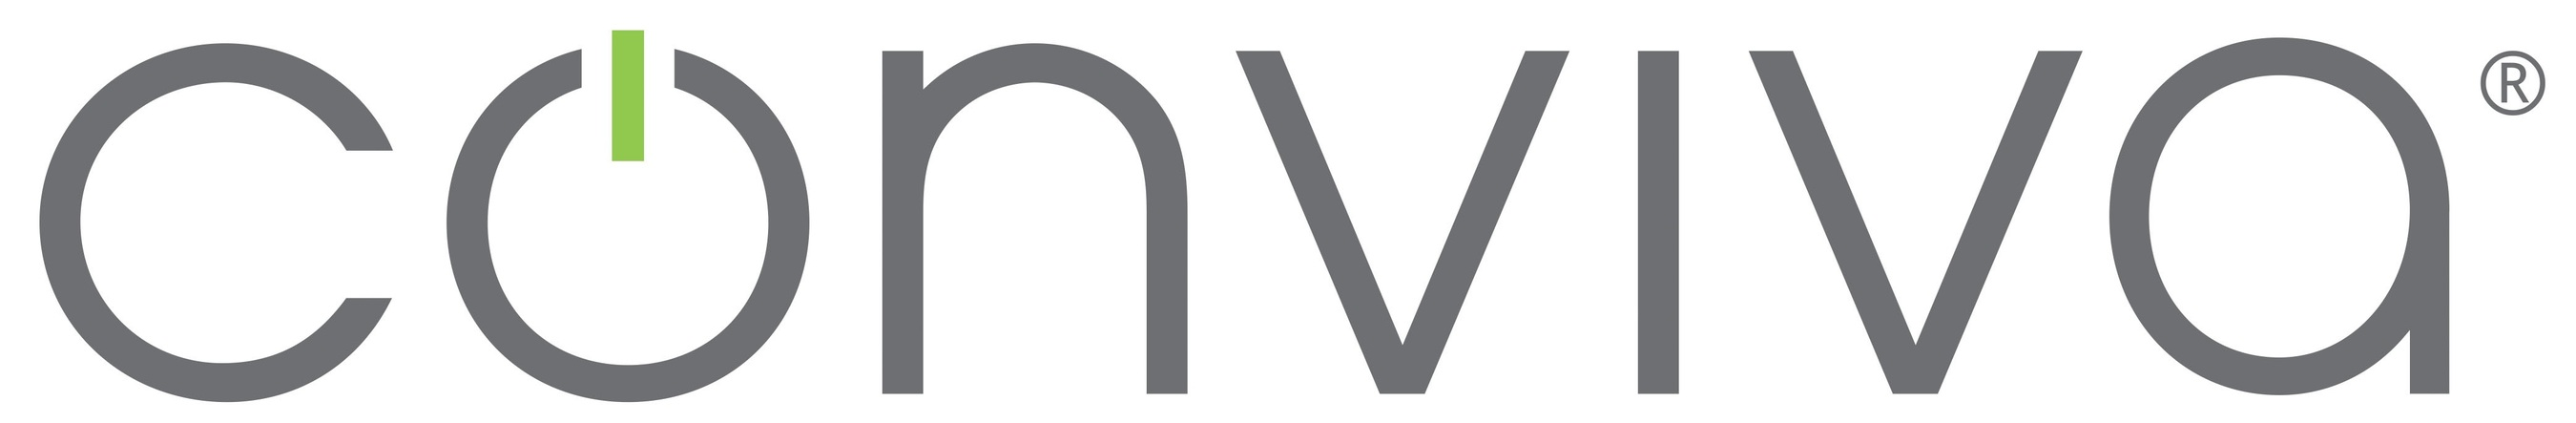 Conviva Announces Revolutionary New Ad Insights Products